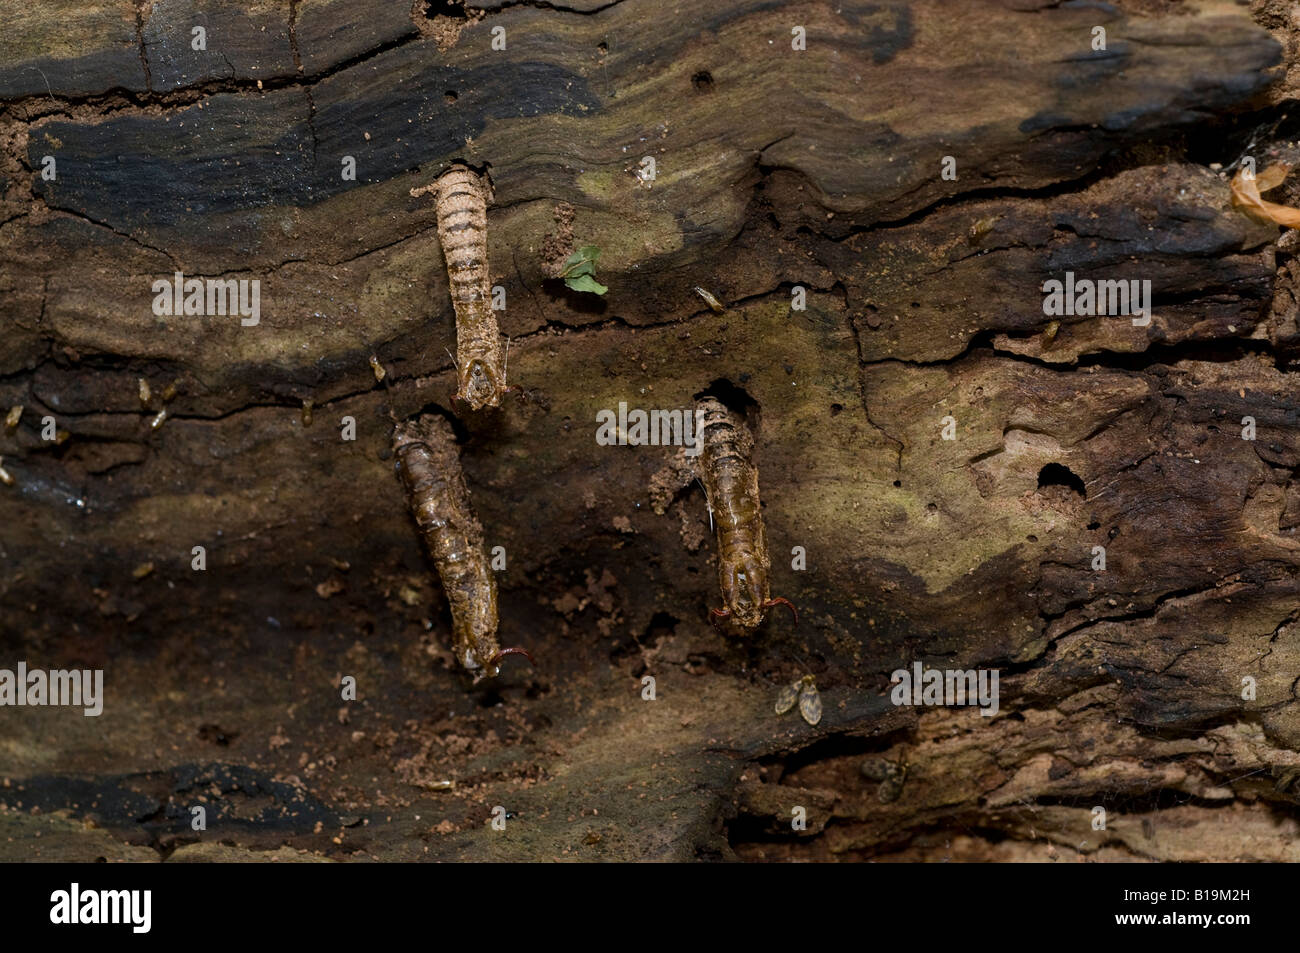 Empty pupal cases of Crane Flies possibly Ctenophora or Tipula sticking out of a rotten log - Stock Image